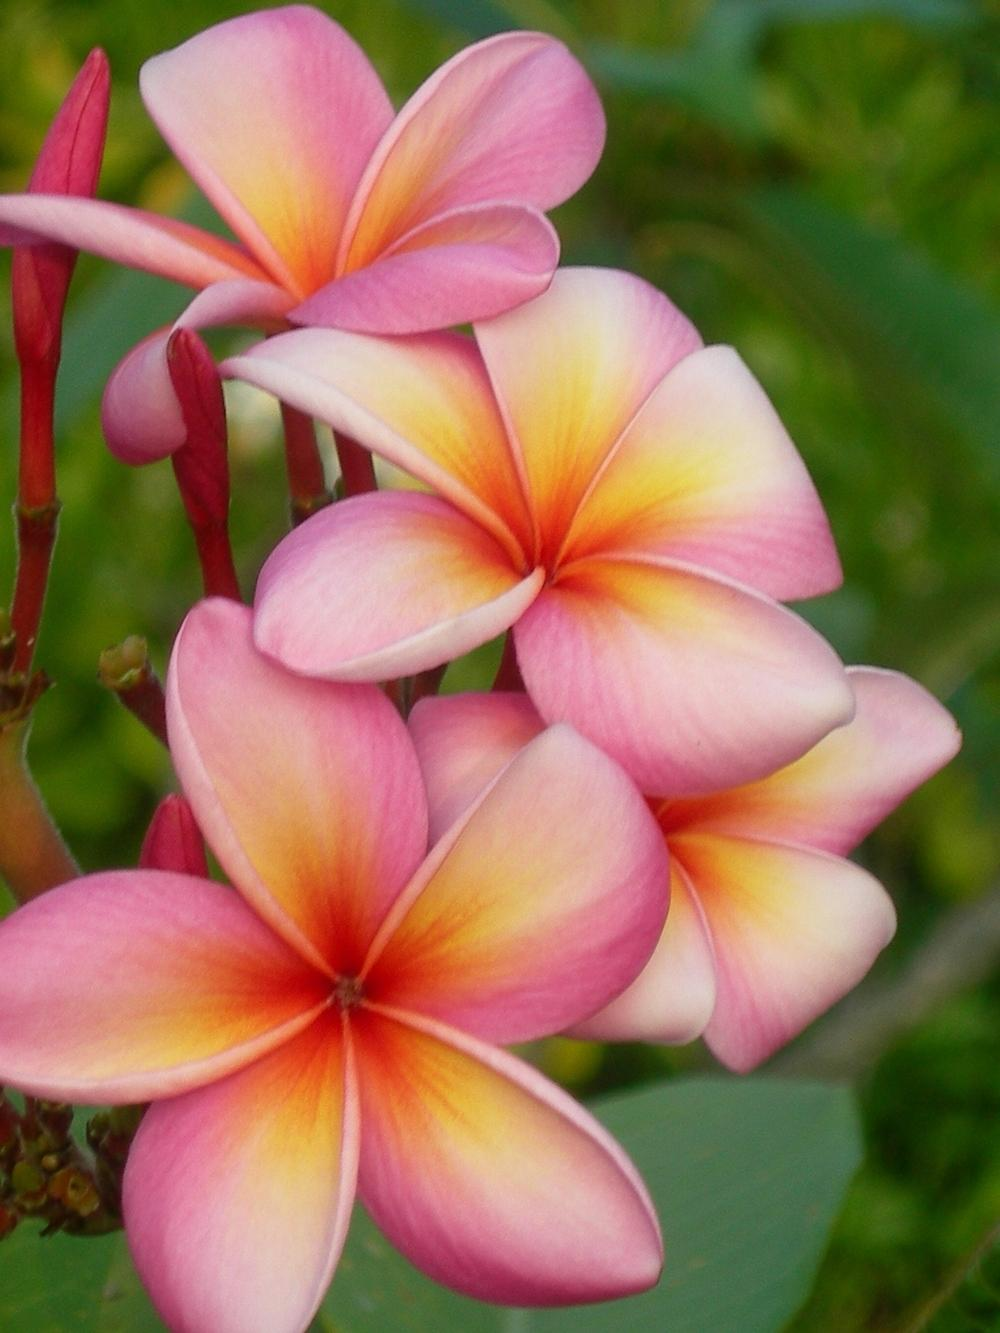 23 Colorful Hawaiian Flower Tattoos With Meanings